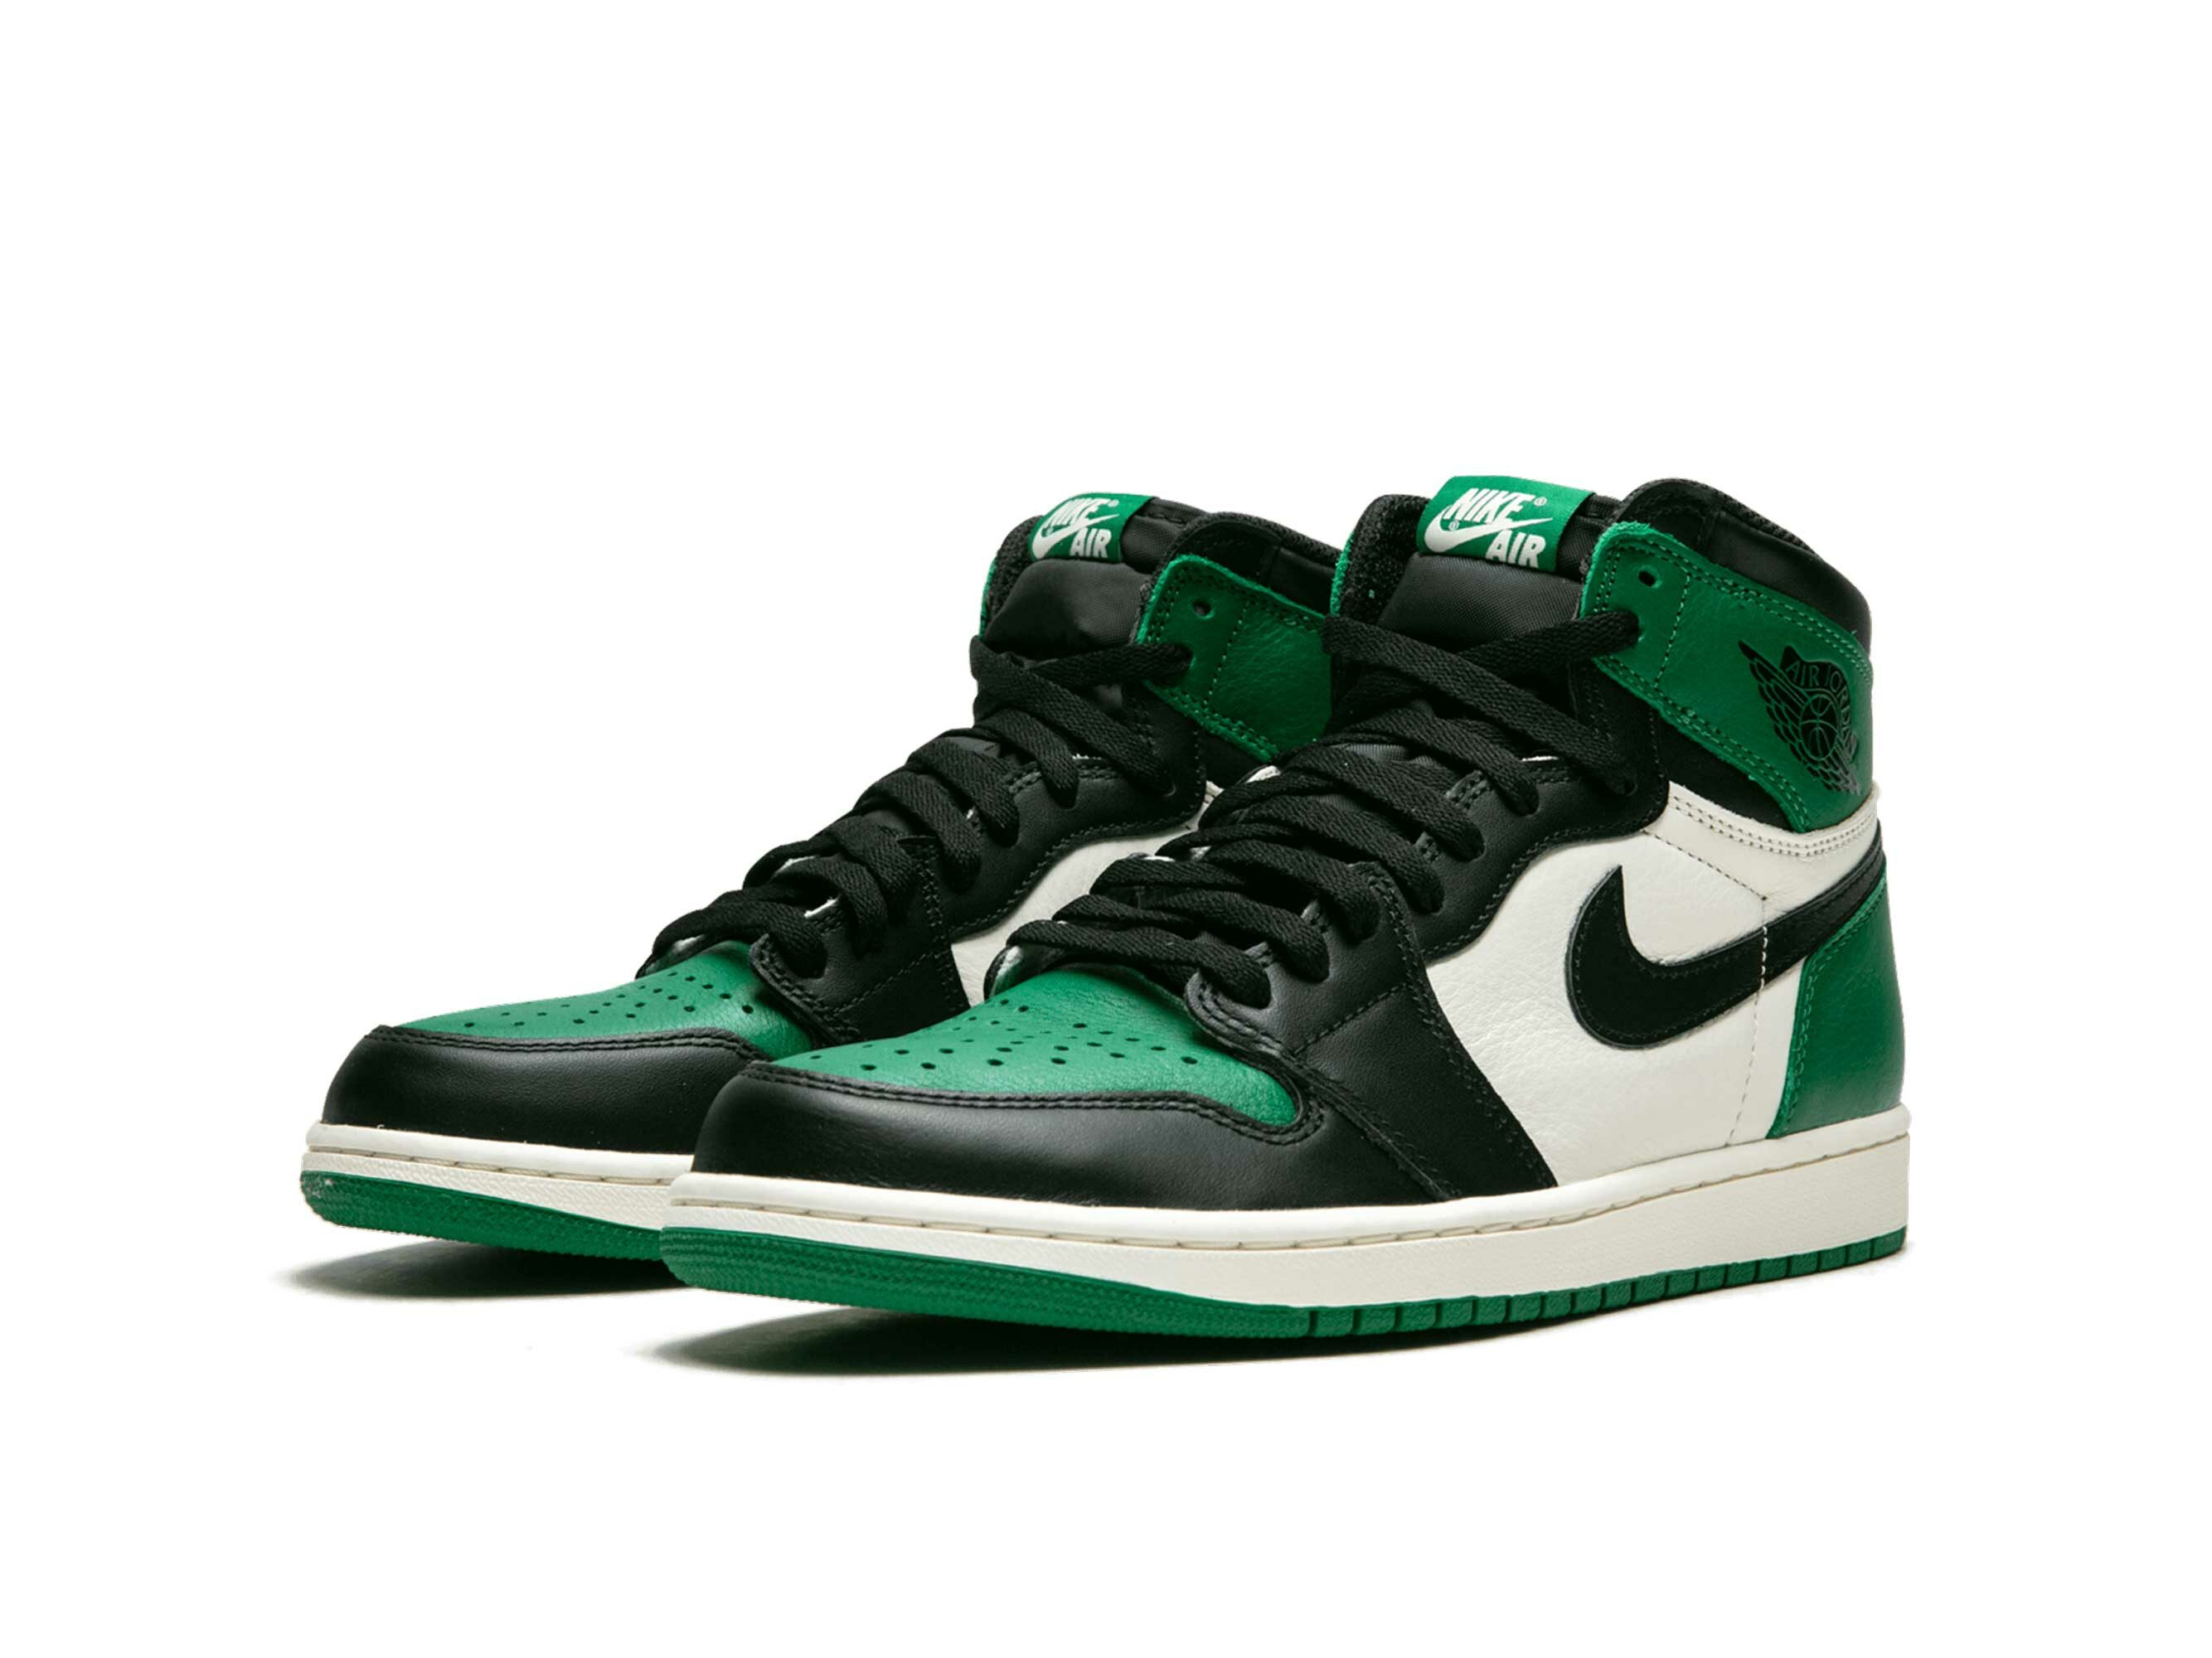 nike air Jordan 1 retro high og pine green 555088_302 купить